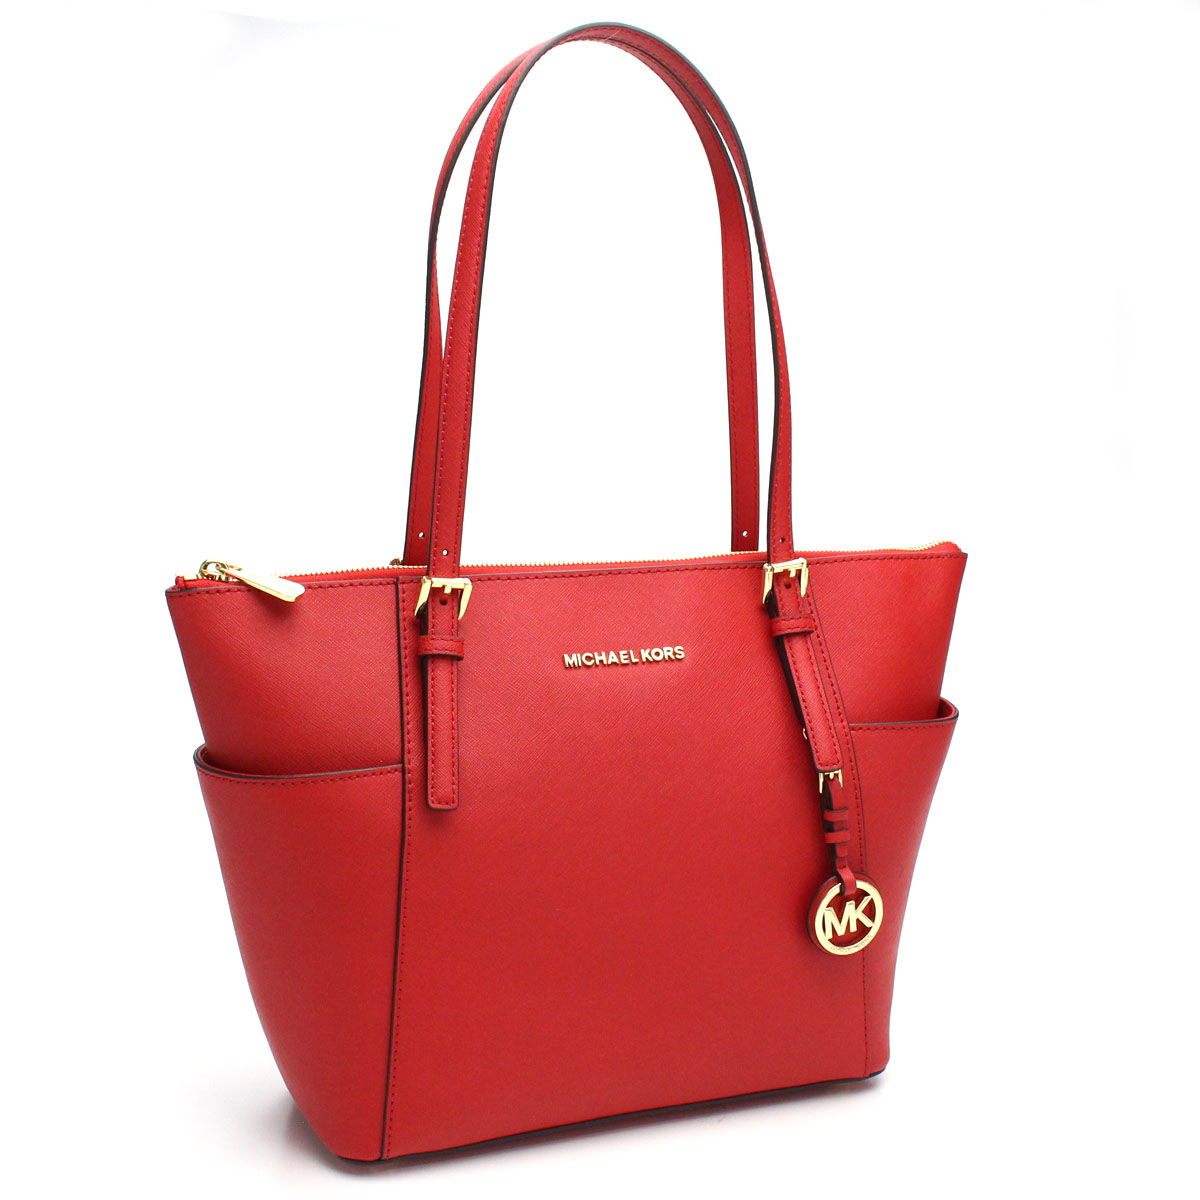 ec040d5ee93aa Bighit The total brand wholesale  Michael Kors (MICHAEL KORS) JET SET tote  bag 30F2GTTT8L BRIGHT RED red system